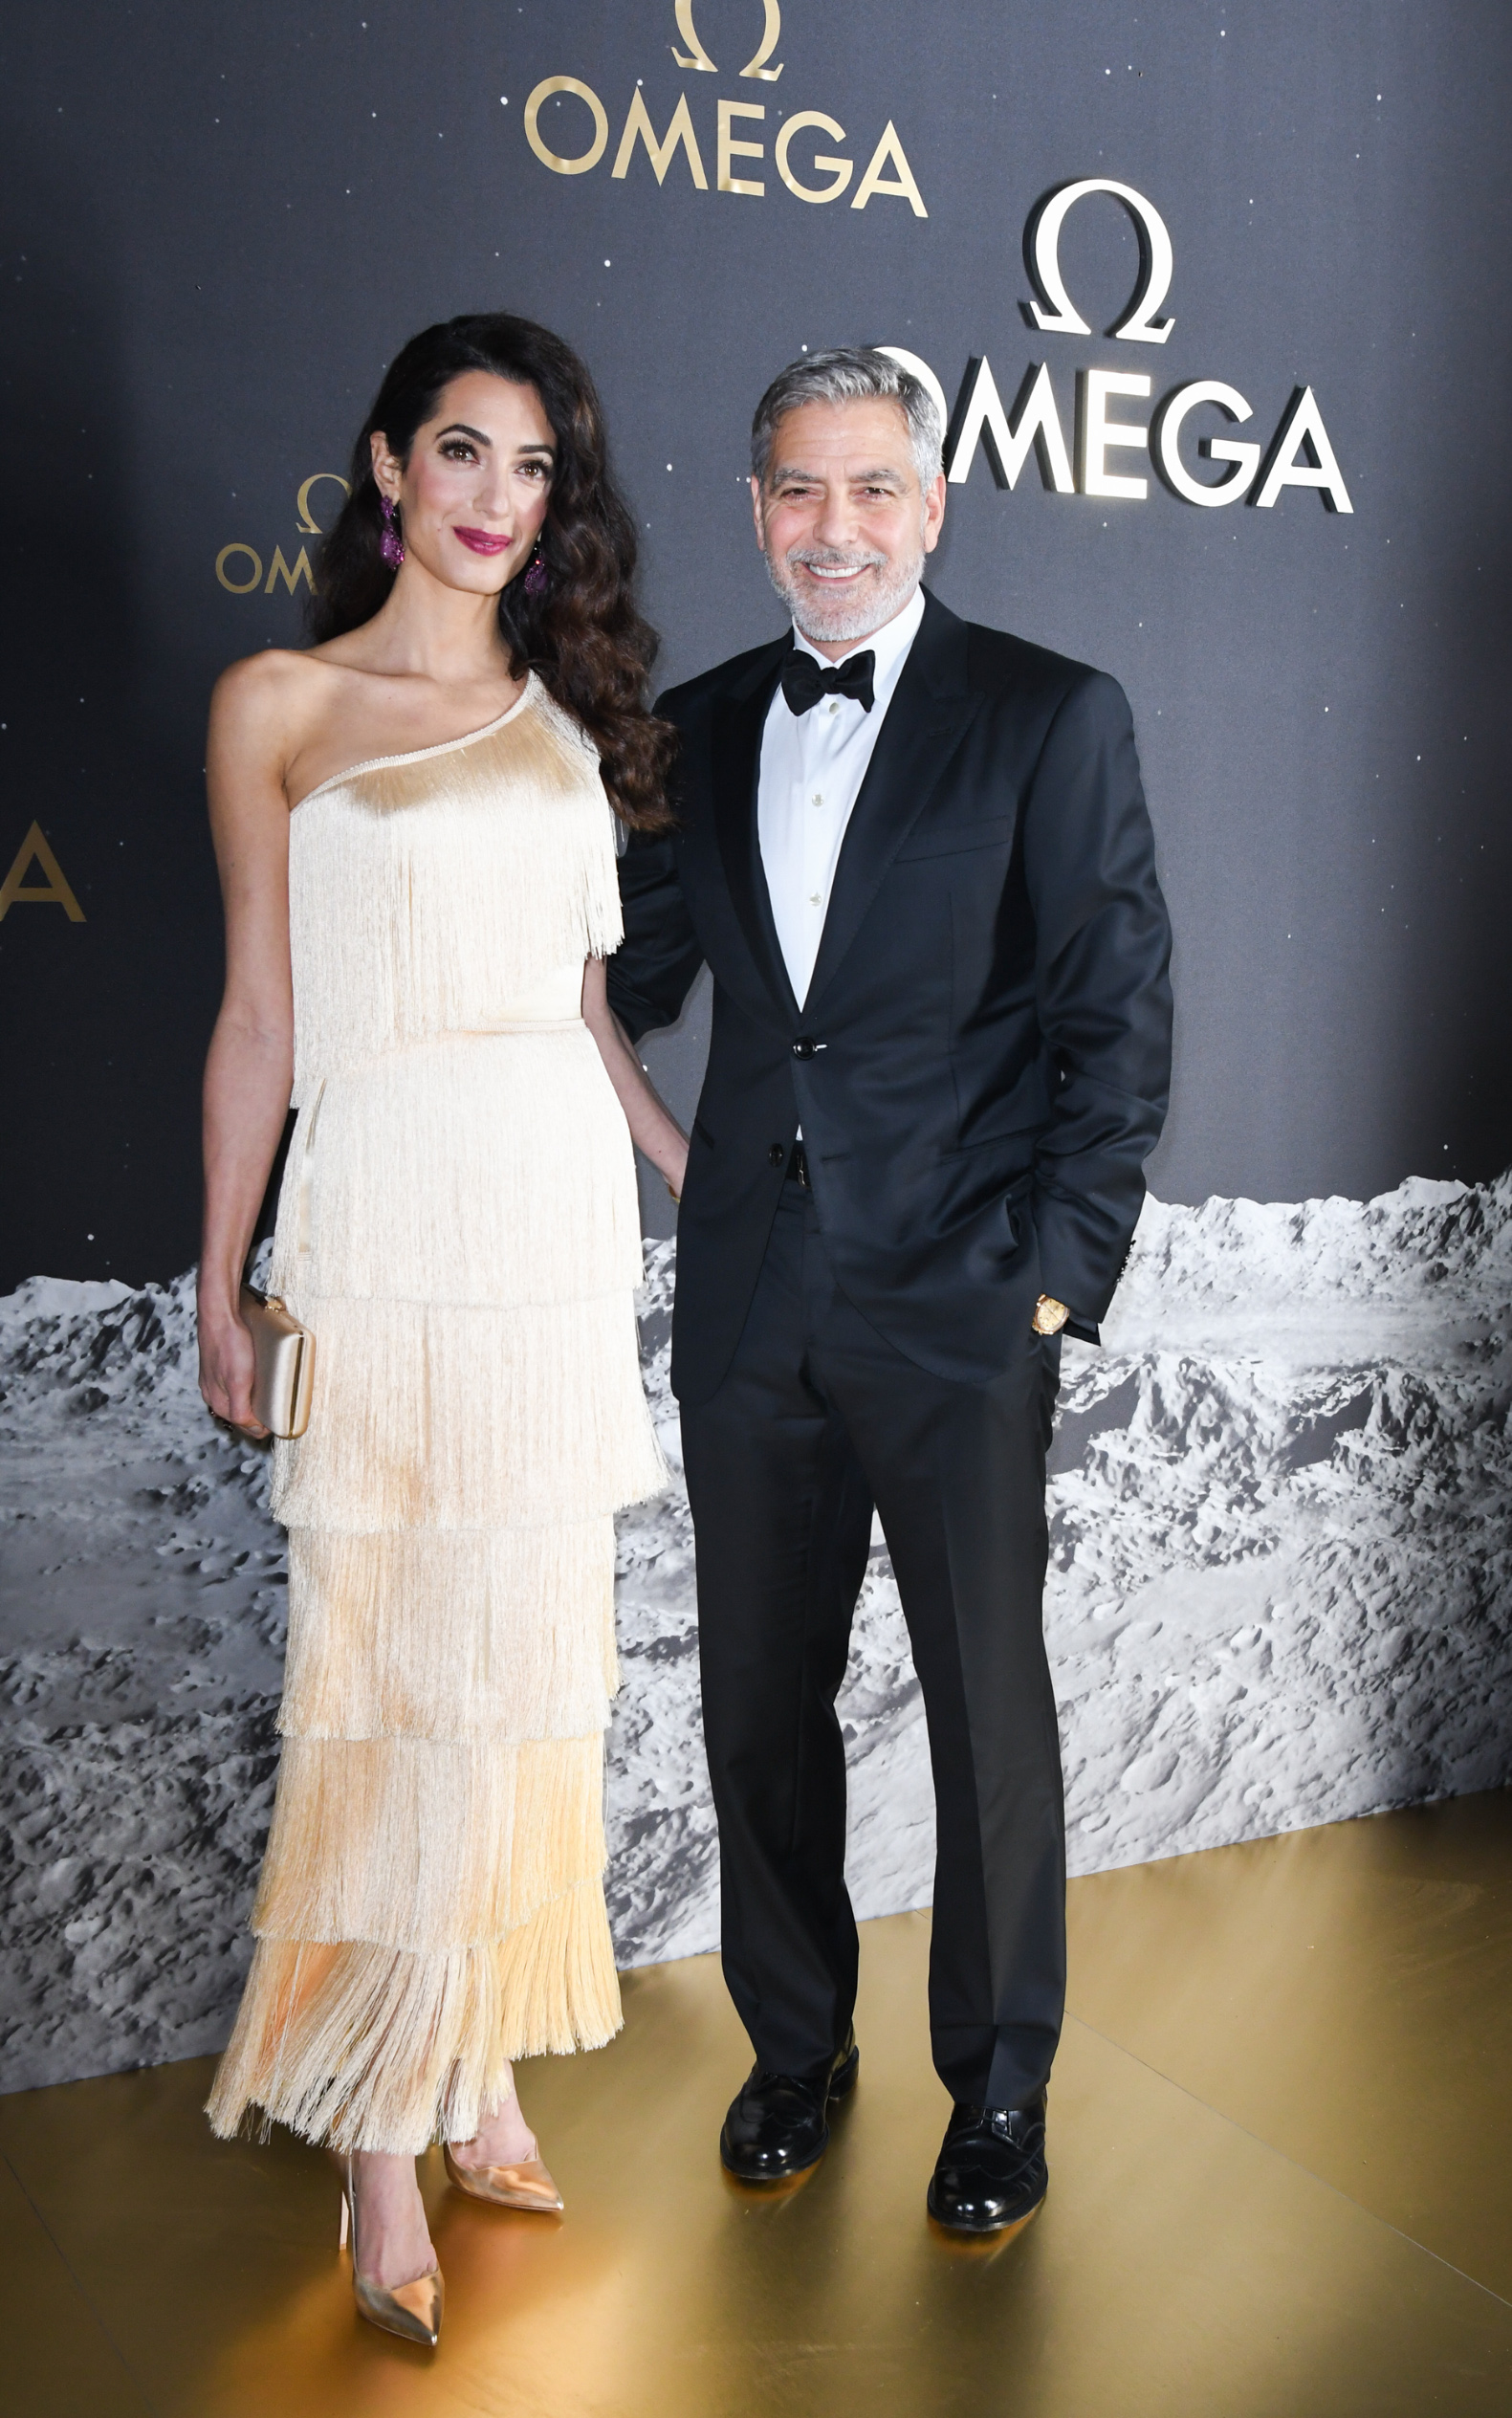 ORLANDO, FLORIDA - MAY 09: Amal Clooney and George Clooney attend OMEGA 50th Anniversary Moon Landing Event on May 09, 2019 in Orlando, Florida. (Photo by Gerardo Mora/Getty Images for OMEGA)